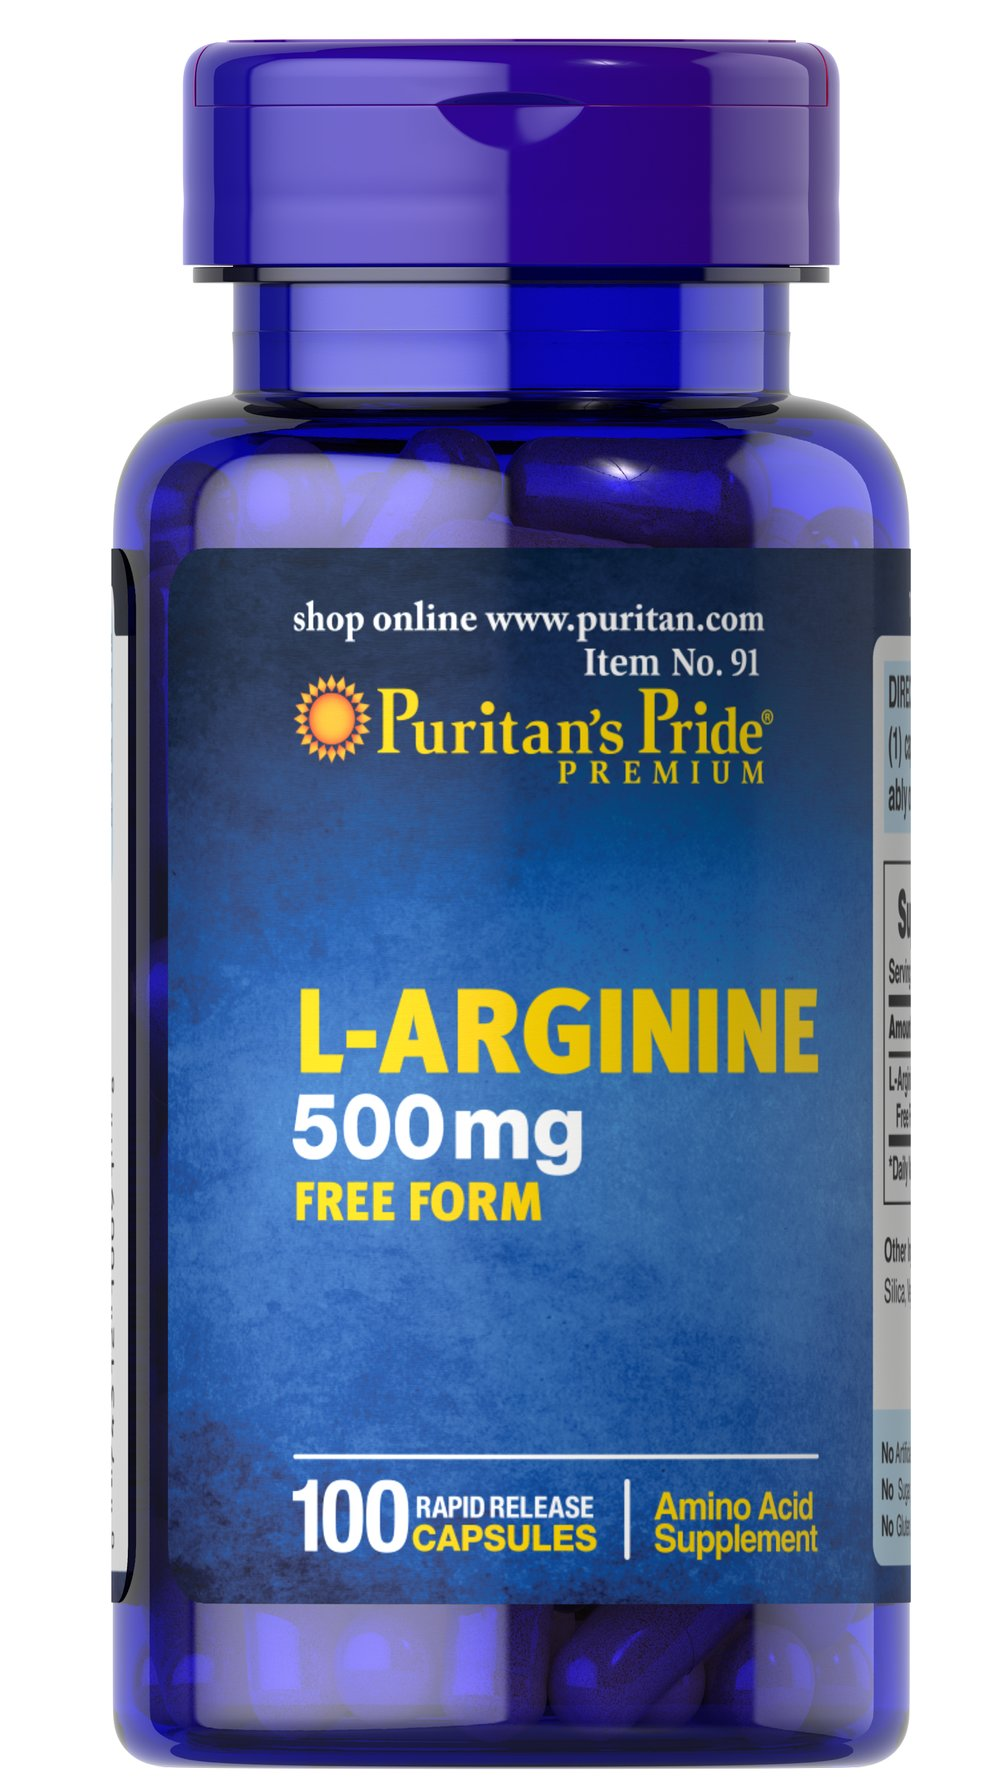 L-Arginine 500 mg Thumbnail Alternate Bottle View